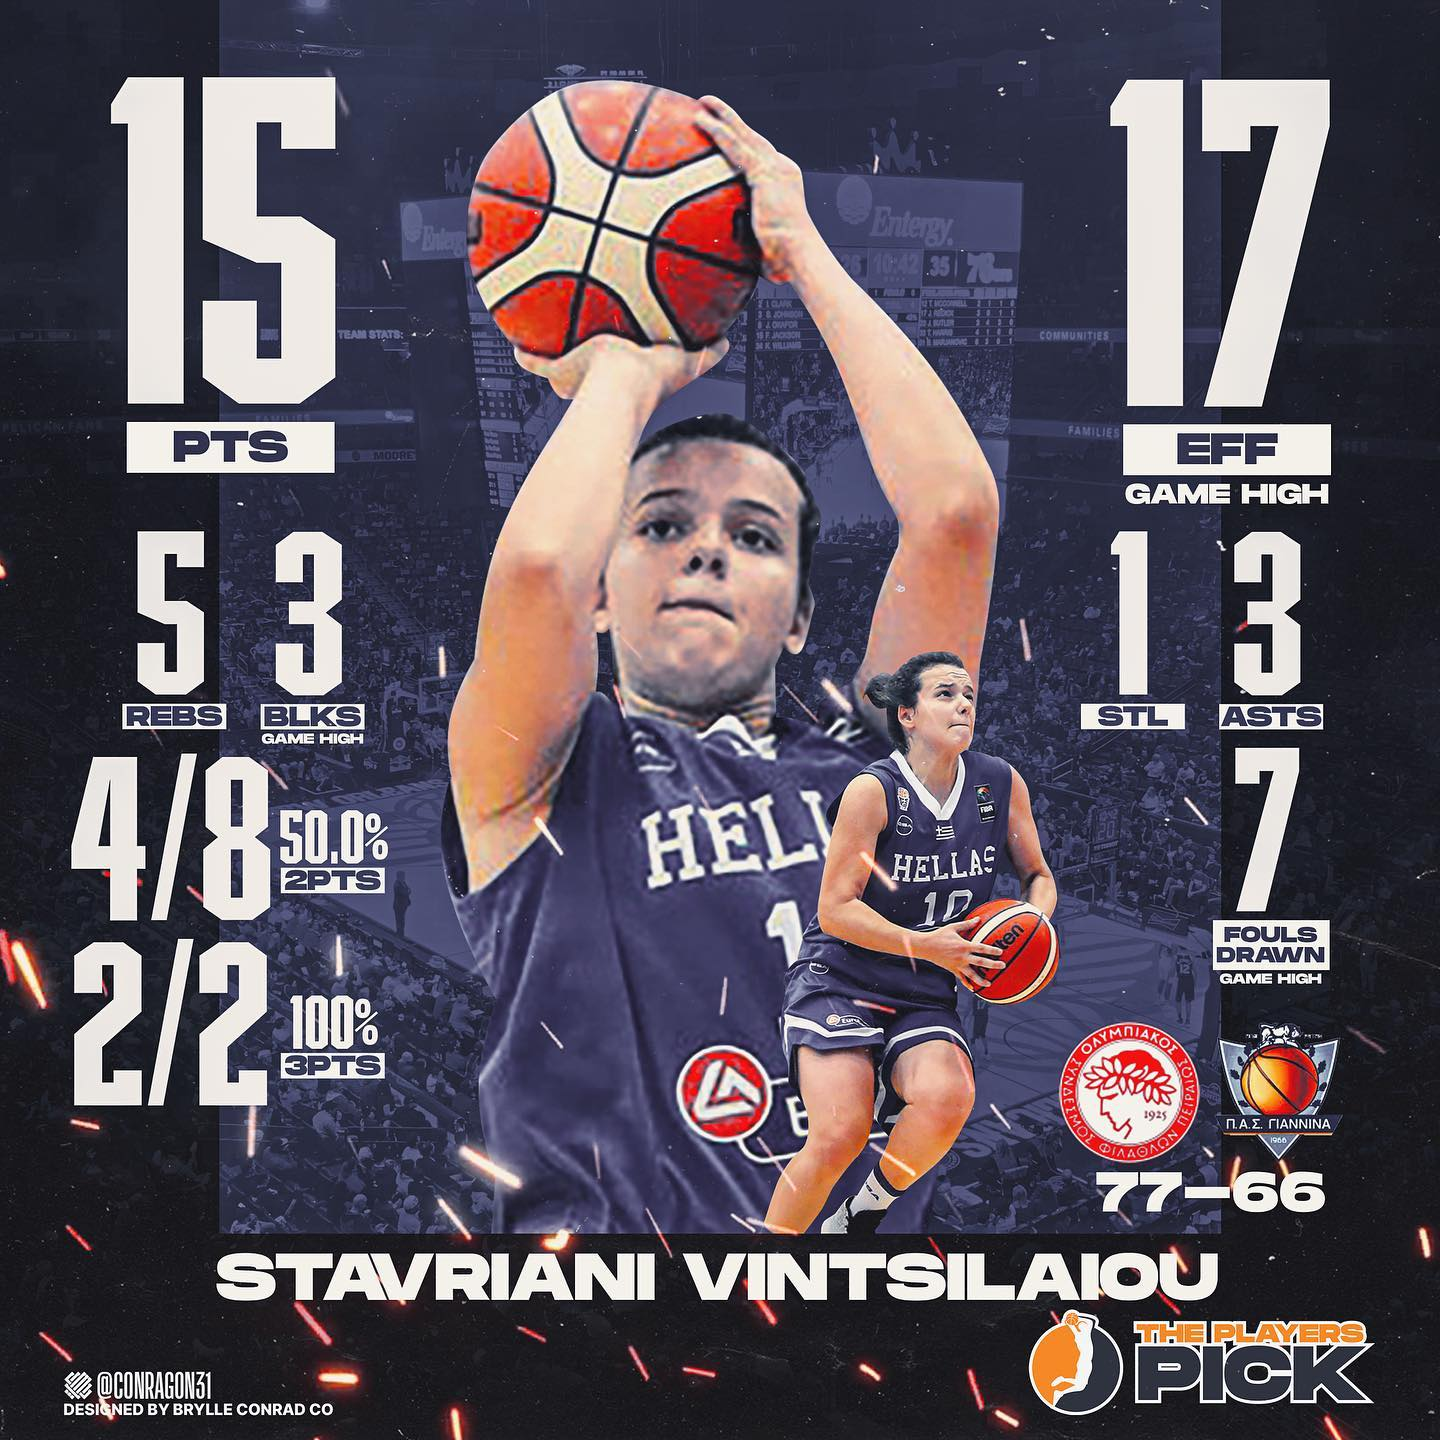 Stavriani Vintsilaiou was the MVP of the game between Olympiacos & PAS!